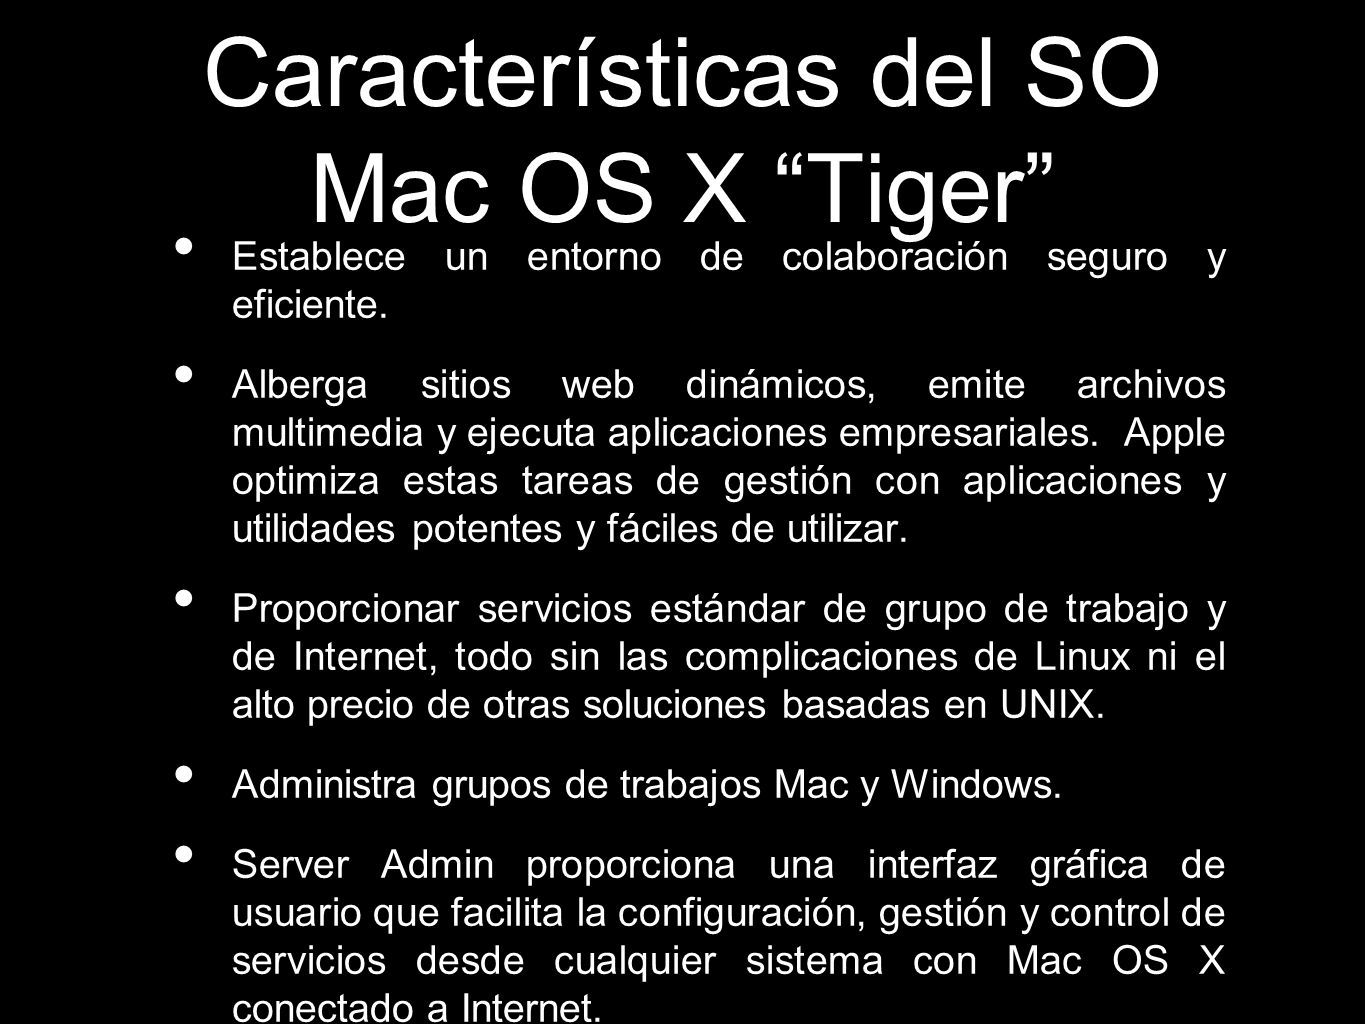 Características del SO Mac OS X Tiger